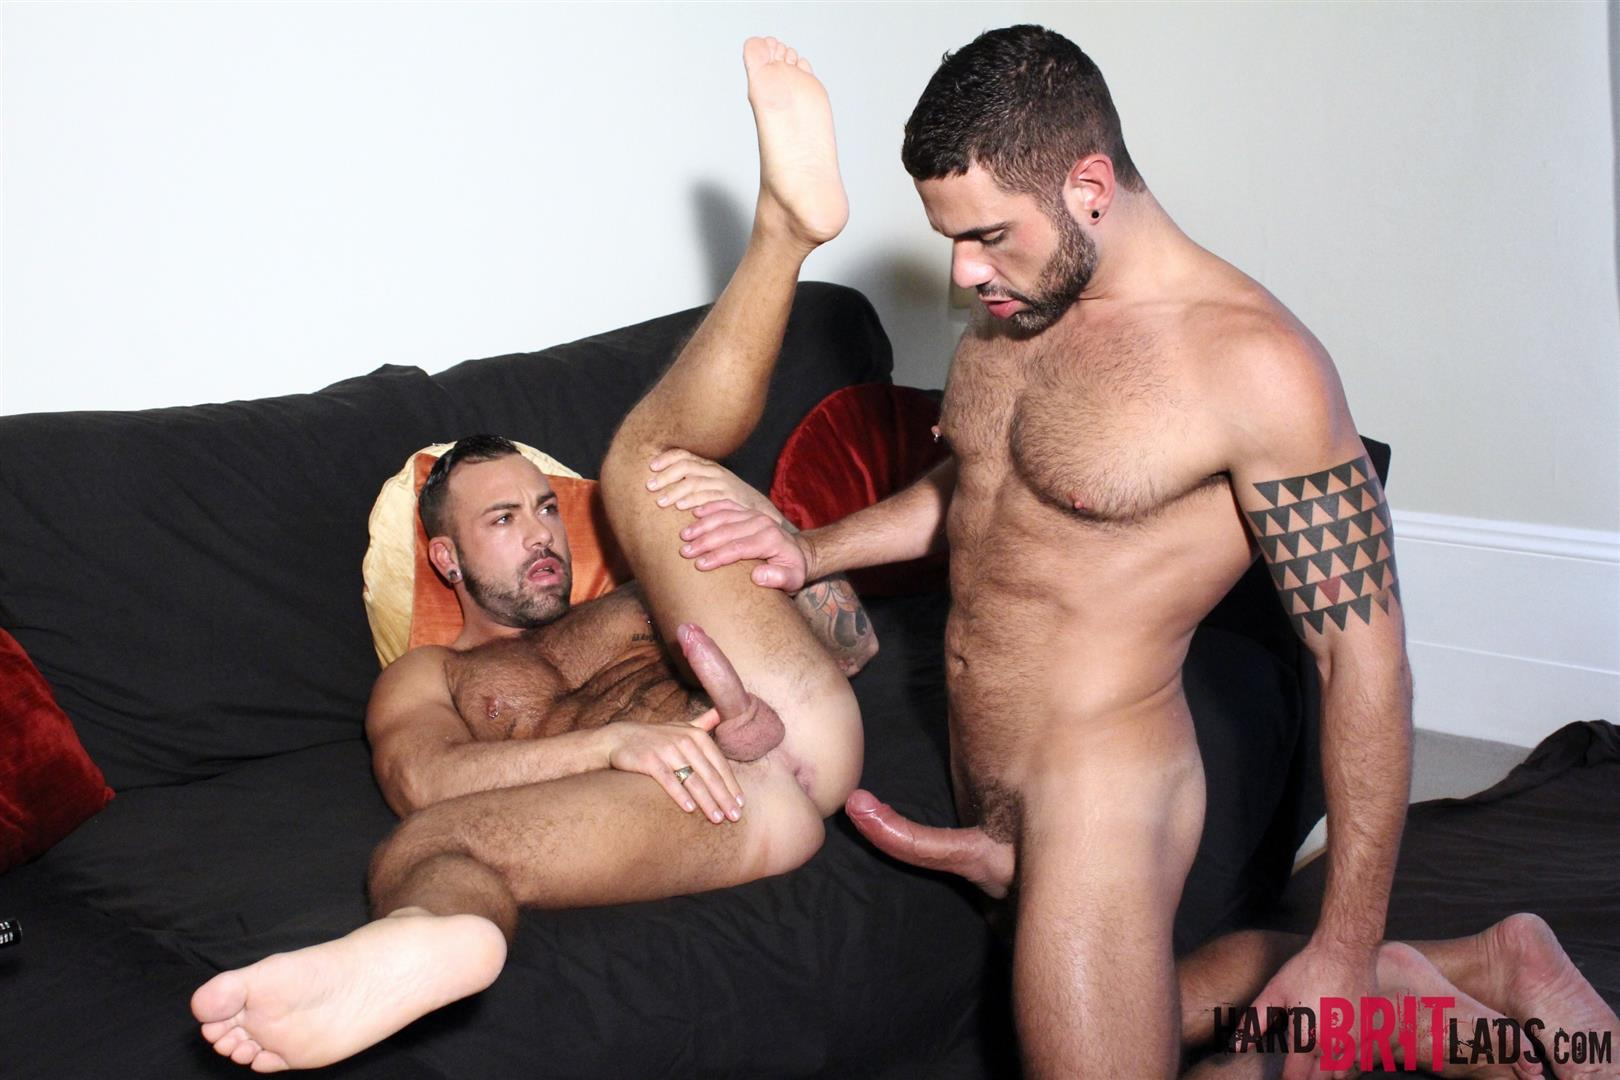 Hard Brit Lads Sergi Rodriguez and Letterio Amadeo Big Uncut Cock Fucking Amateur Gay Porn 13